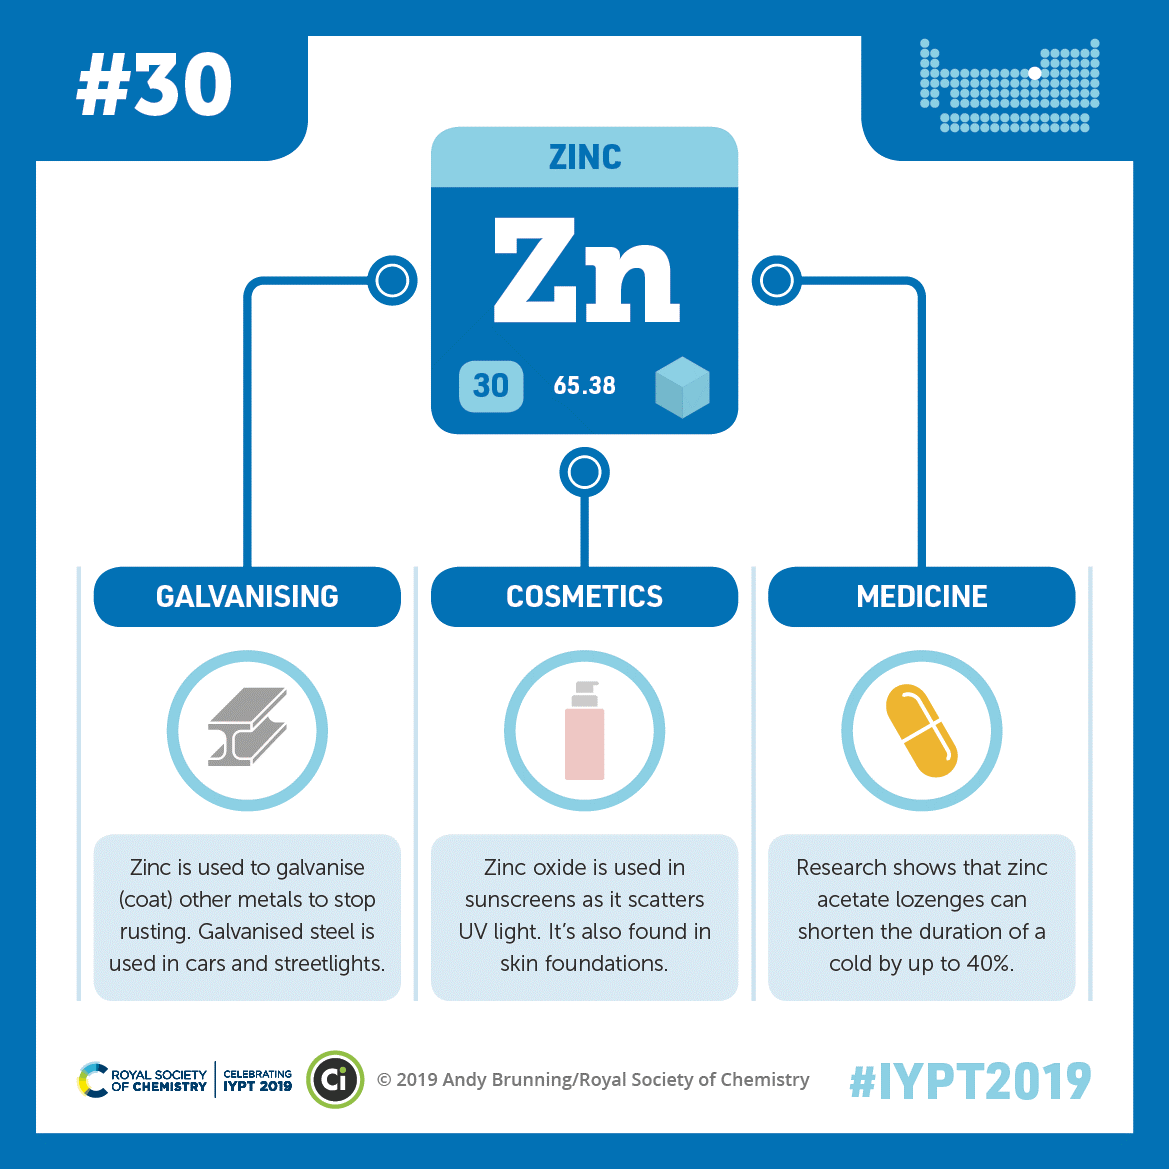 A graphic showing zinc's abbreviation, atomic number, and atomic weight connected by lines to illustrations of an I-beam, a cosmetics bottle, and a pill.